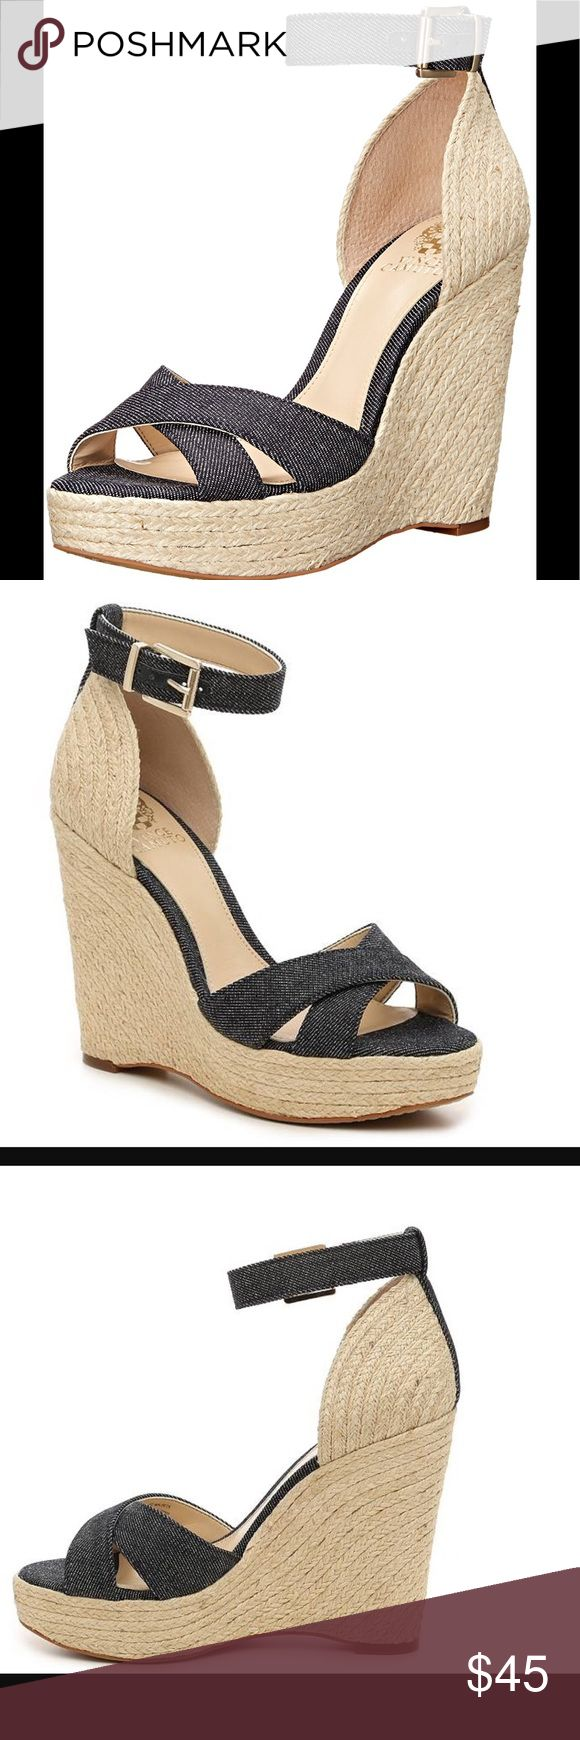 *NEW* Vince Camuto Maurita Espadrille Wedge Sandal This espadrille wedge is great for a busy, on-the-go lifestyle for all you chic and modern women. A must have for your sundress or Capris. Super comfy with the wedge heel, too. Heel Height: 5 Heel Type: Wedge Material: Denim Vince Camuto Shoes Espadrilles